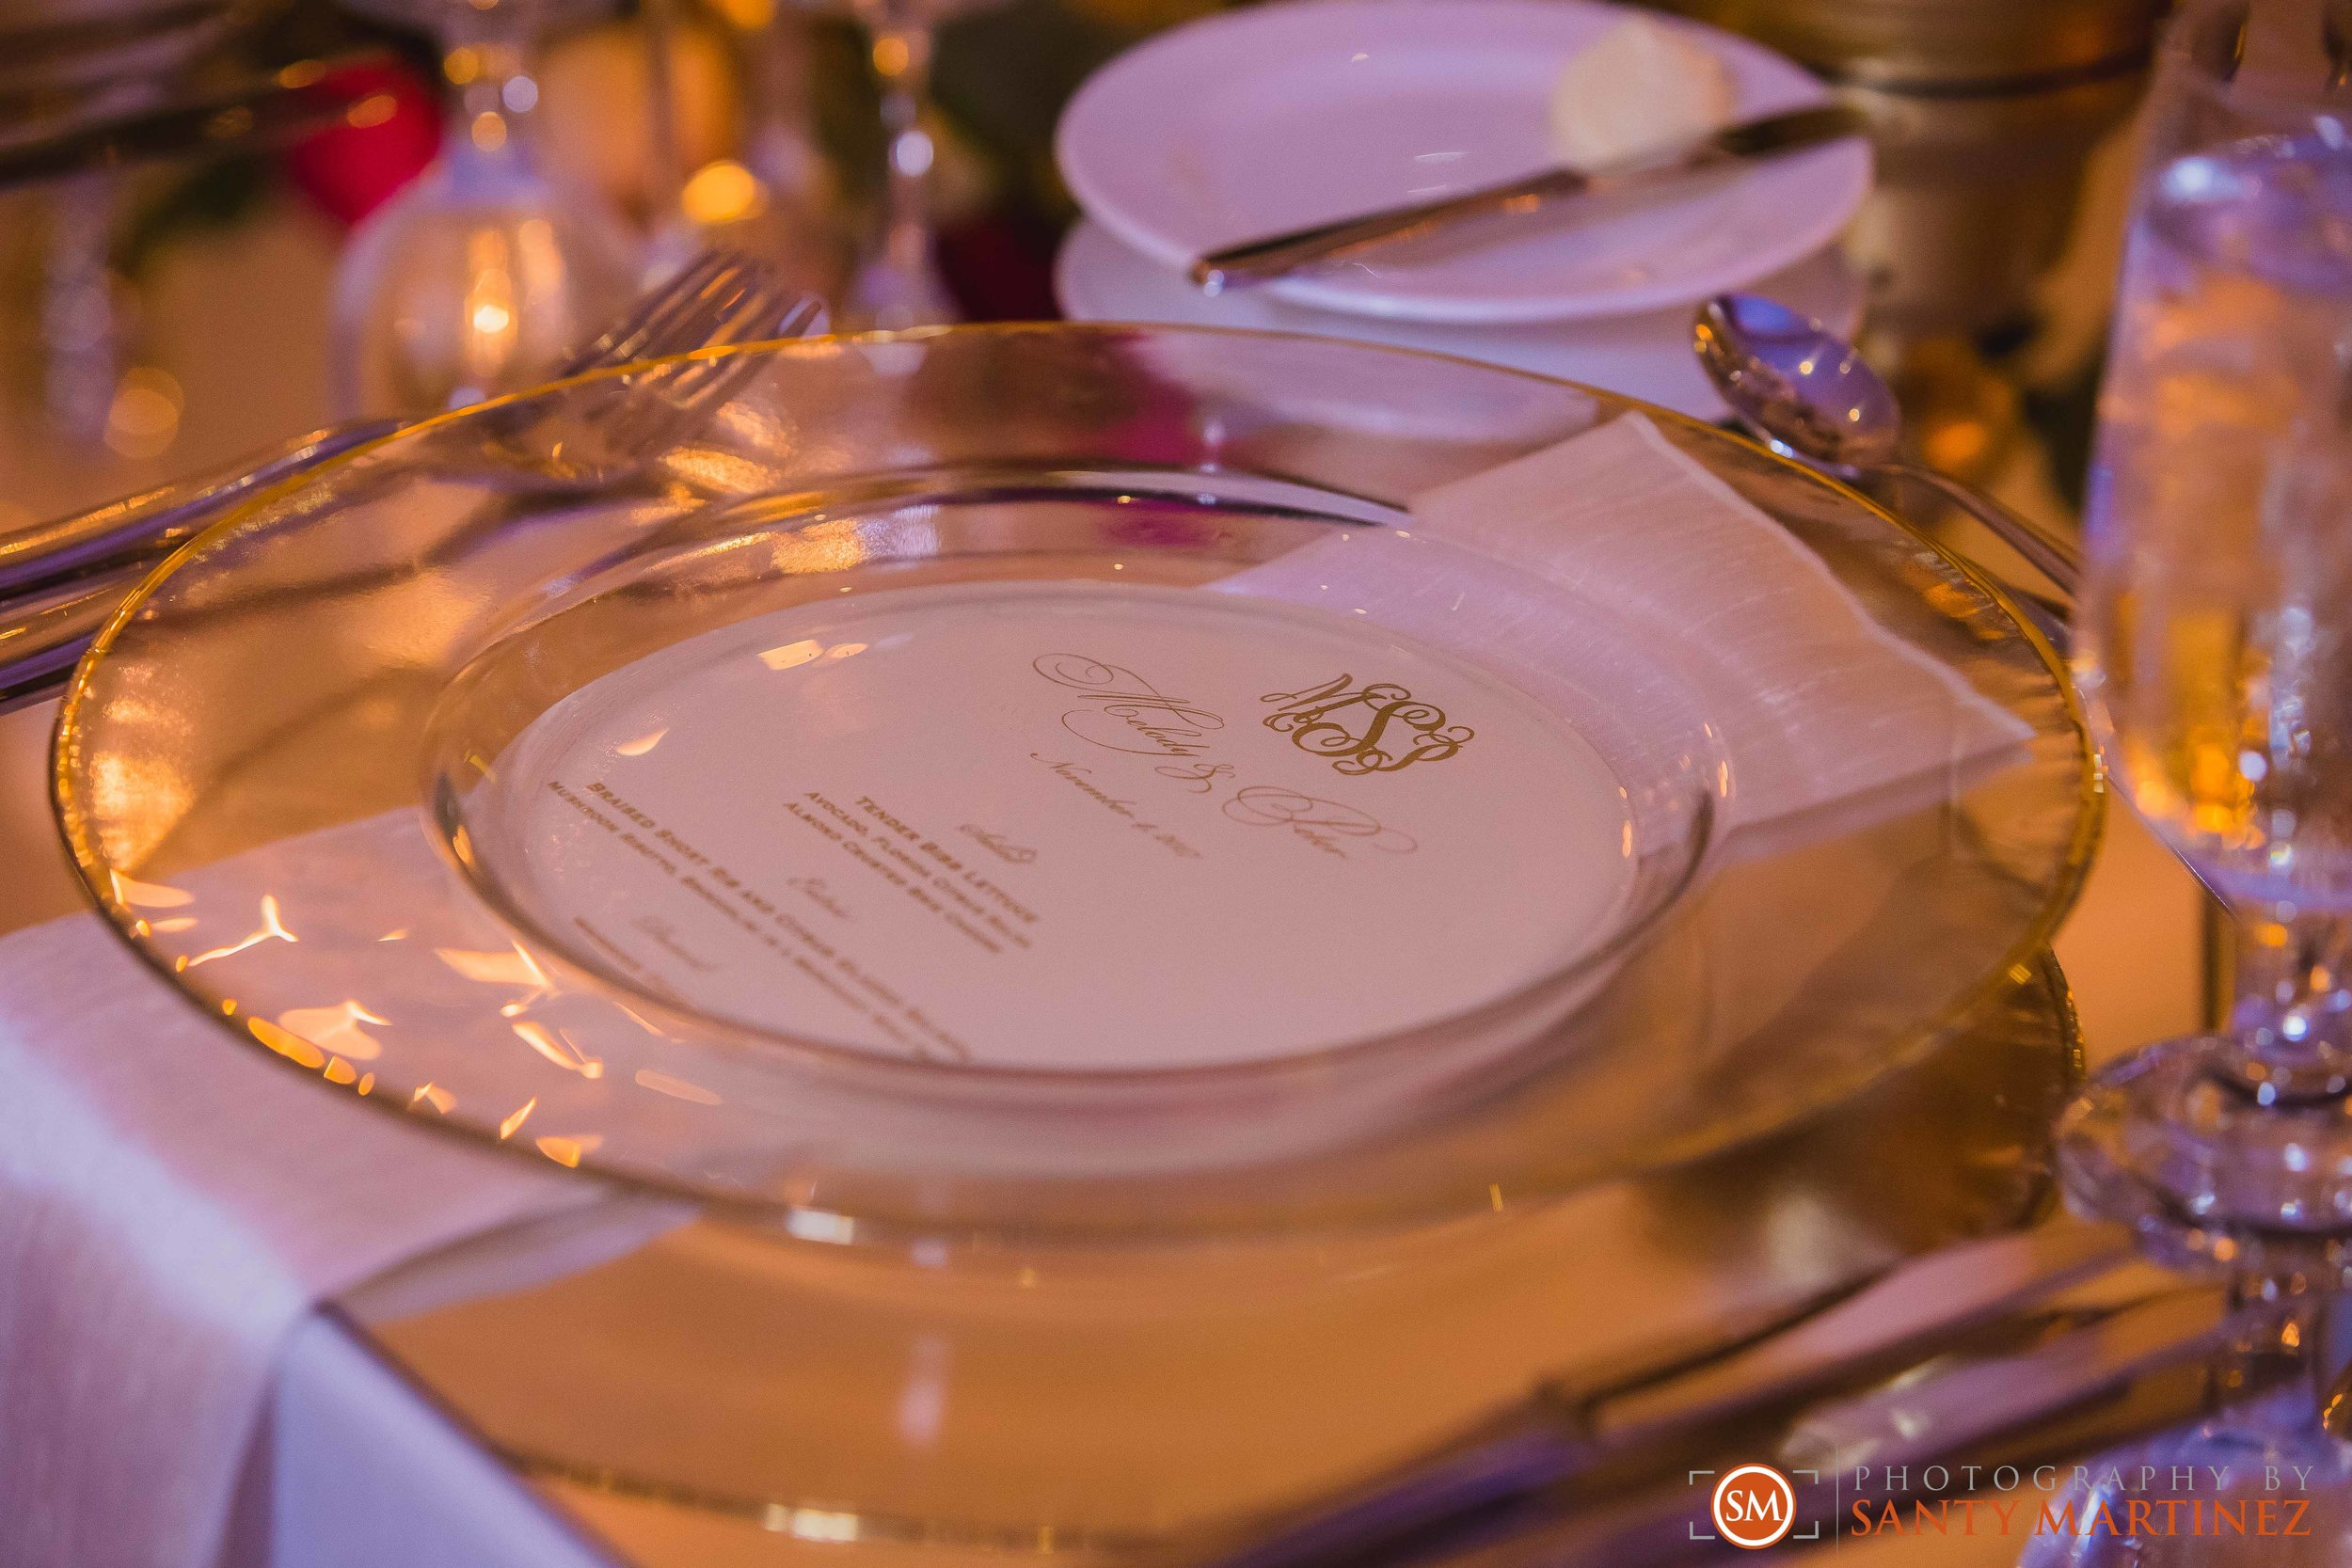 Wedding Ritz Carlton Coconut Grove - Santy Martinez-25.jpg